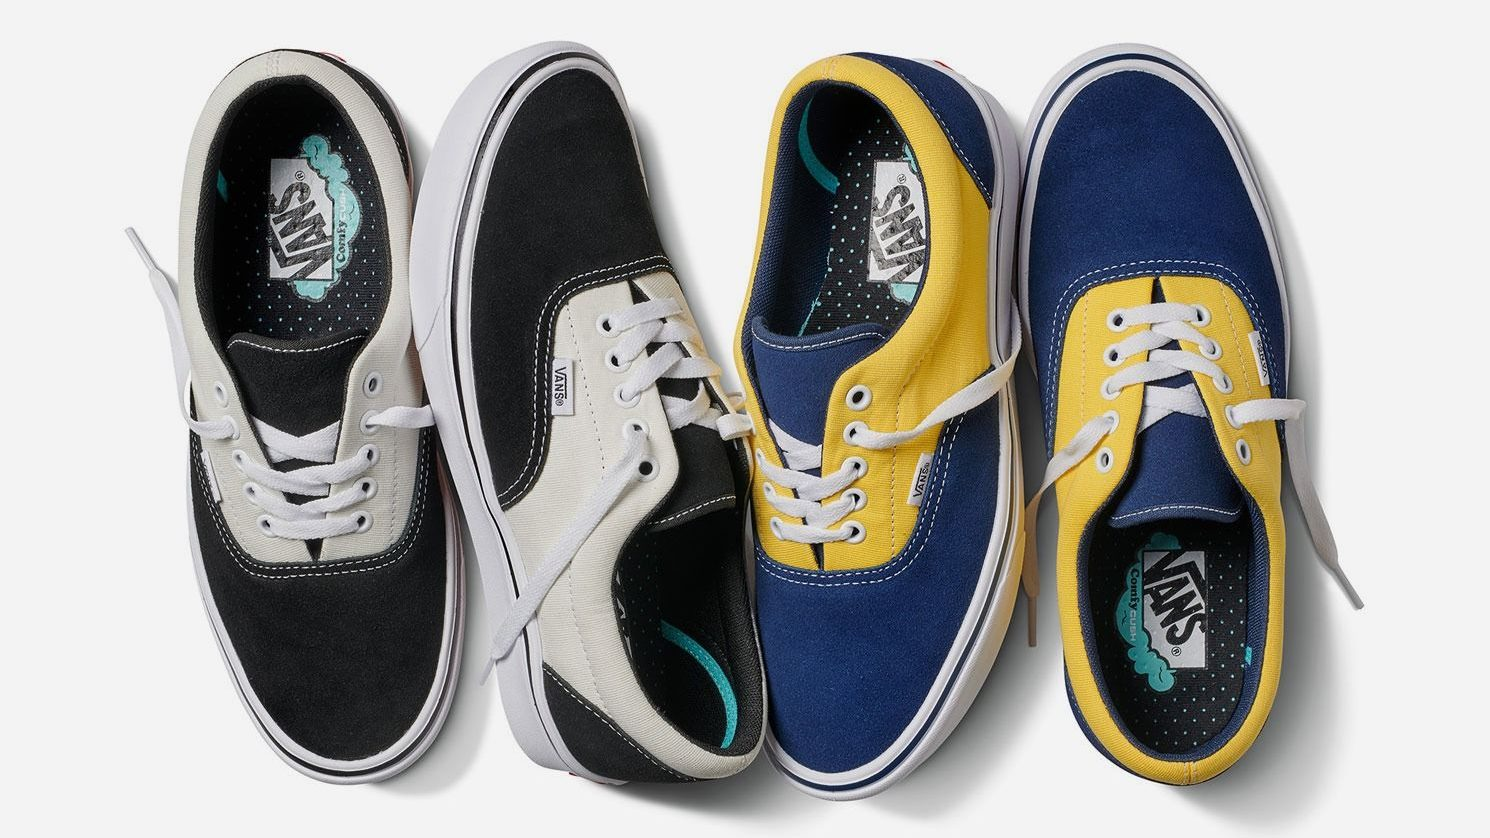 Vans S Comfycush Era Sneaks Modern Cushioning Into Classic Shoes